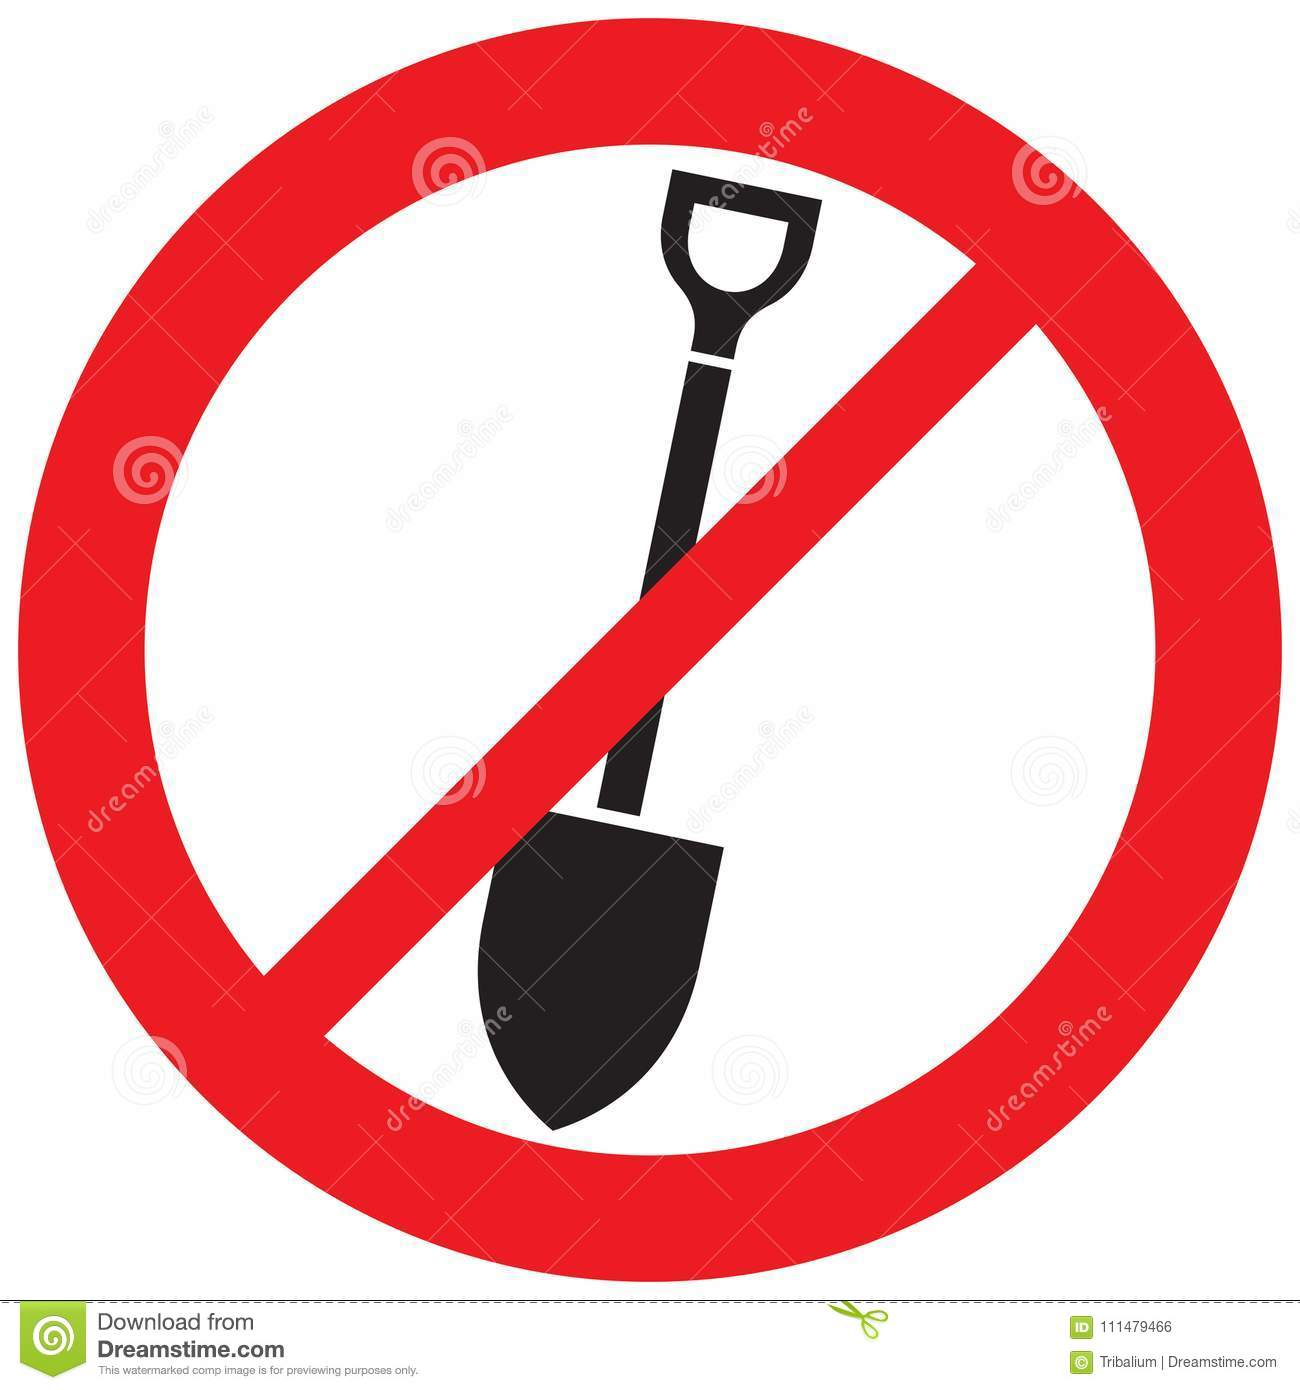 5228a243b4b42 Forbidden Sign With Slippers Stock Vector - Illustration of prohibit ...